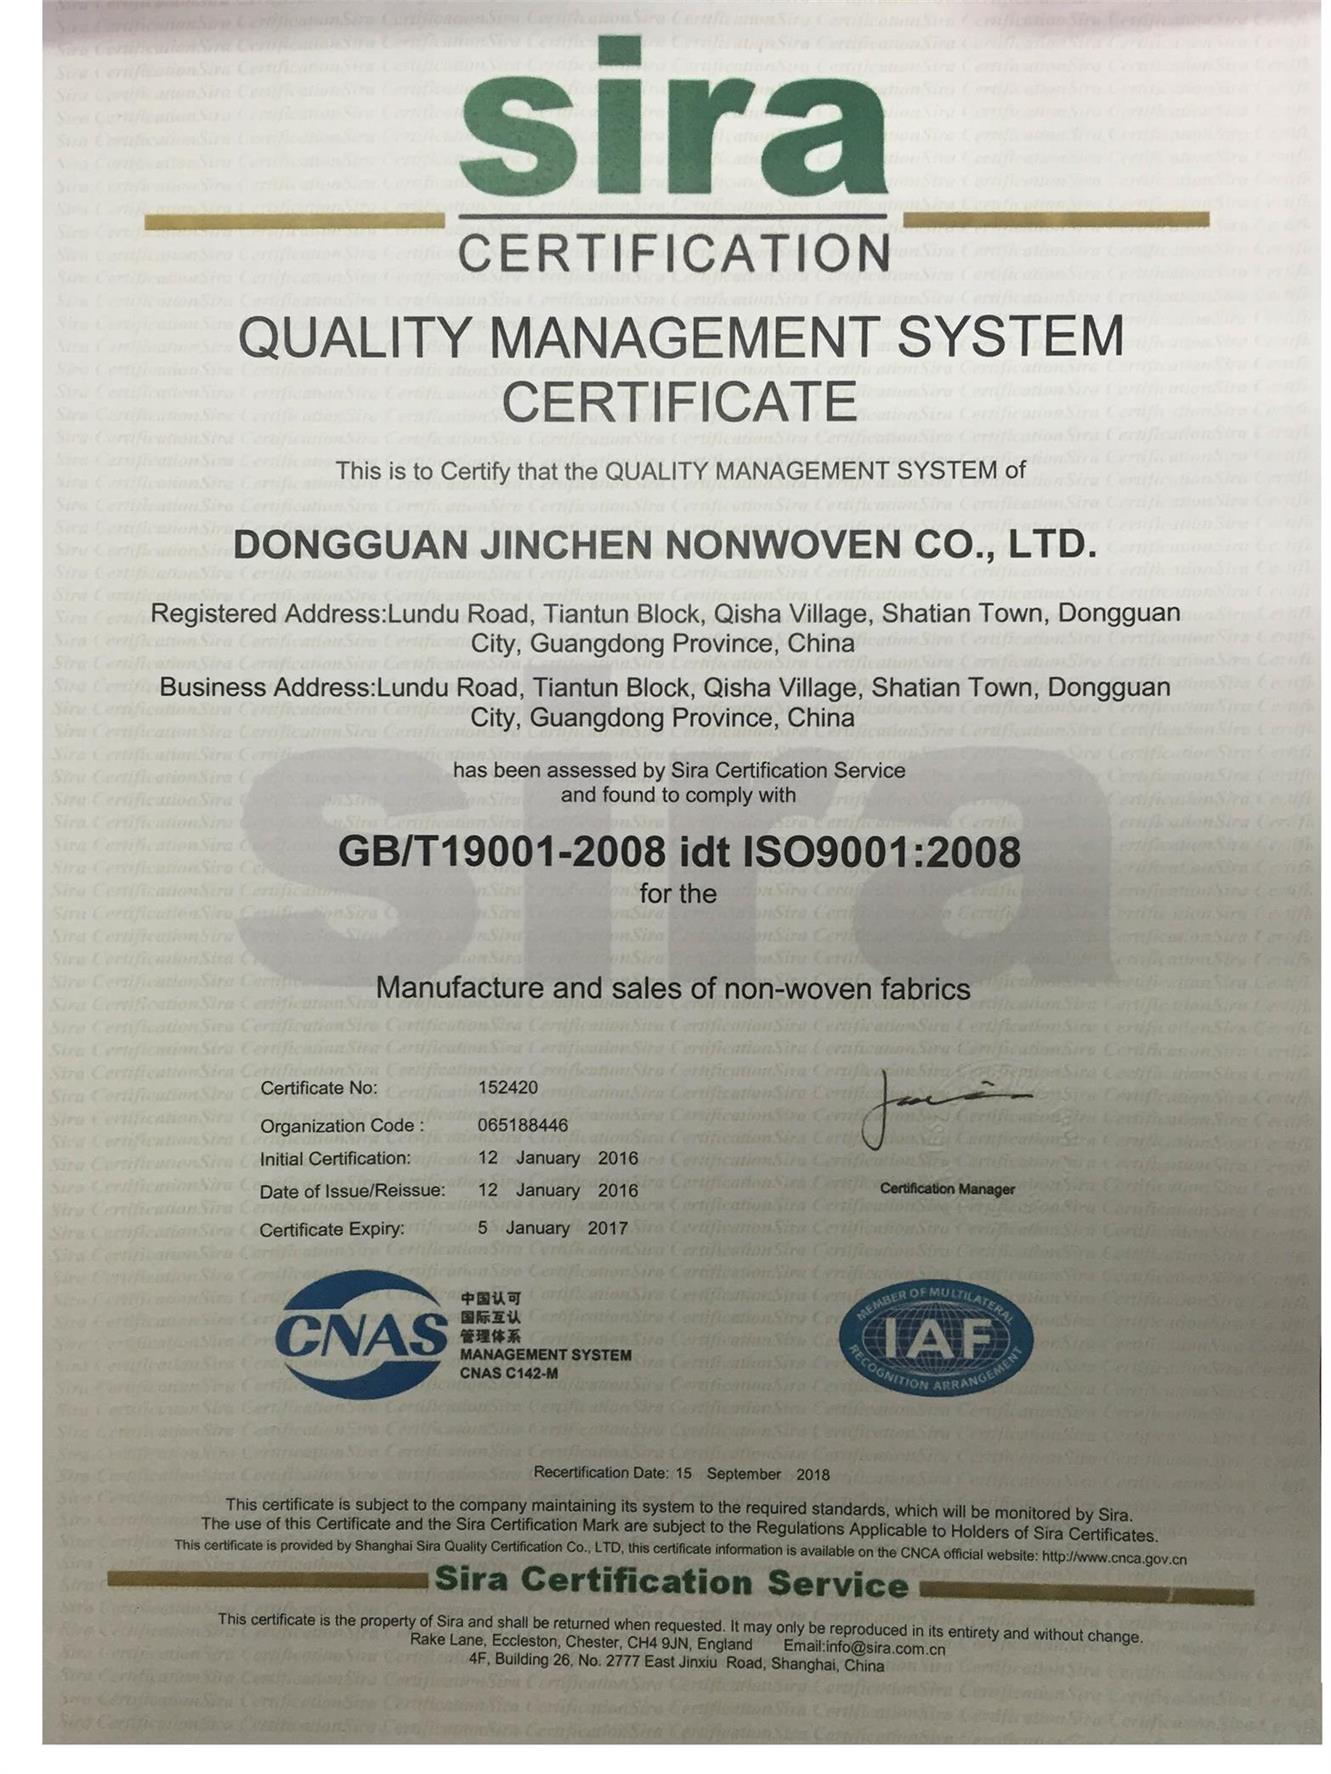 QUALITY MANGEMENT SYSTEM CERTIFTCATE